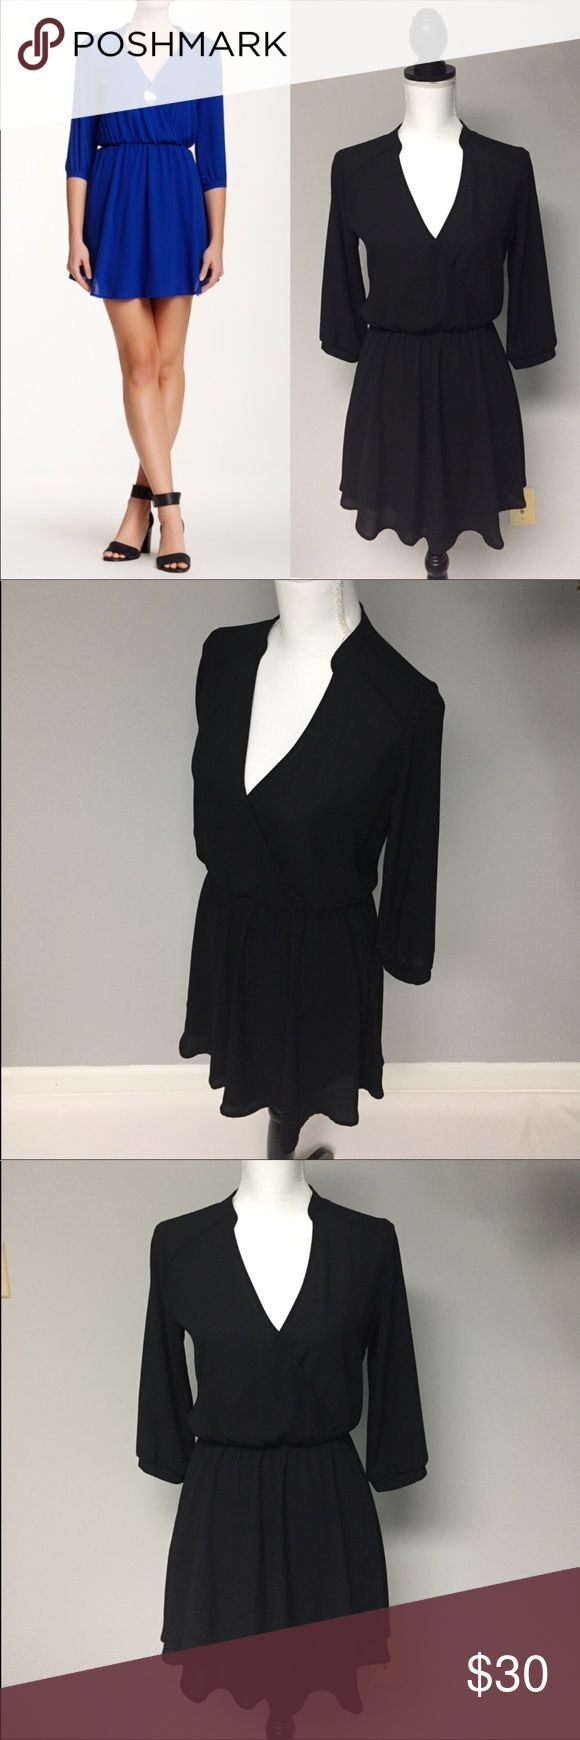 """LUSH Black Little Dress Nordstroms 3/4 sleeve EUC! This gorgeous sexy LUSH dress from Nordstroms is in EXCELLENT condition! No flaws! V-Neck. 3/4 sleeves. Built in slip. Bust 38"""" Waist (stretched) 35"""" From top of shoulder to bottom of dress 33"""" Forever 21, Top Shop, H&M, Free People, Brandy Melville, Pacsun, Lucky Brand, Urban Outfitters, Ralph Lauren, Express Michael Kors, Madewell, American Rag, Macy's, Zara, Mod cloth, Betsey Johnson, Burberry, Coach, Nordstroms, Nicole Miller, The Loft…"""